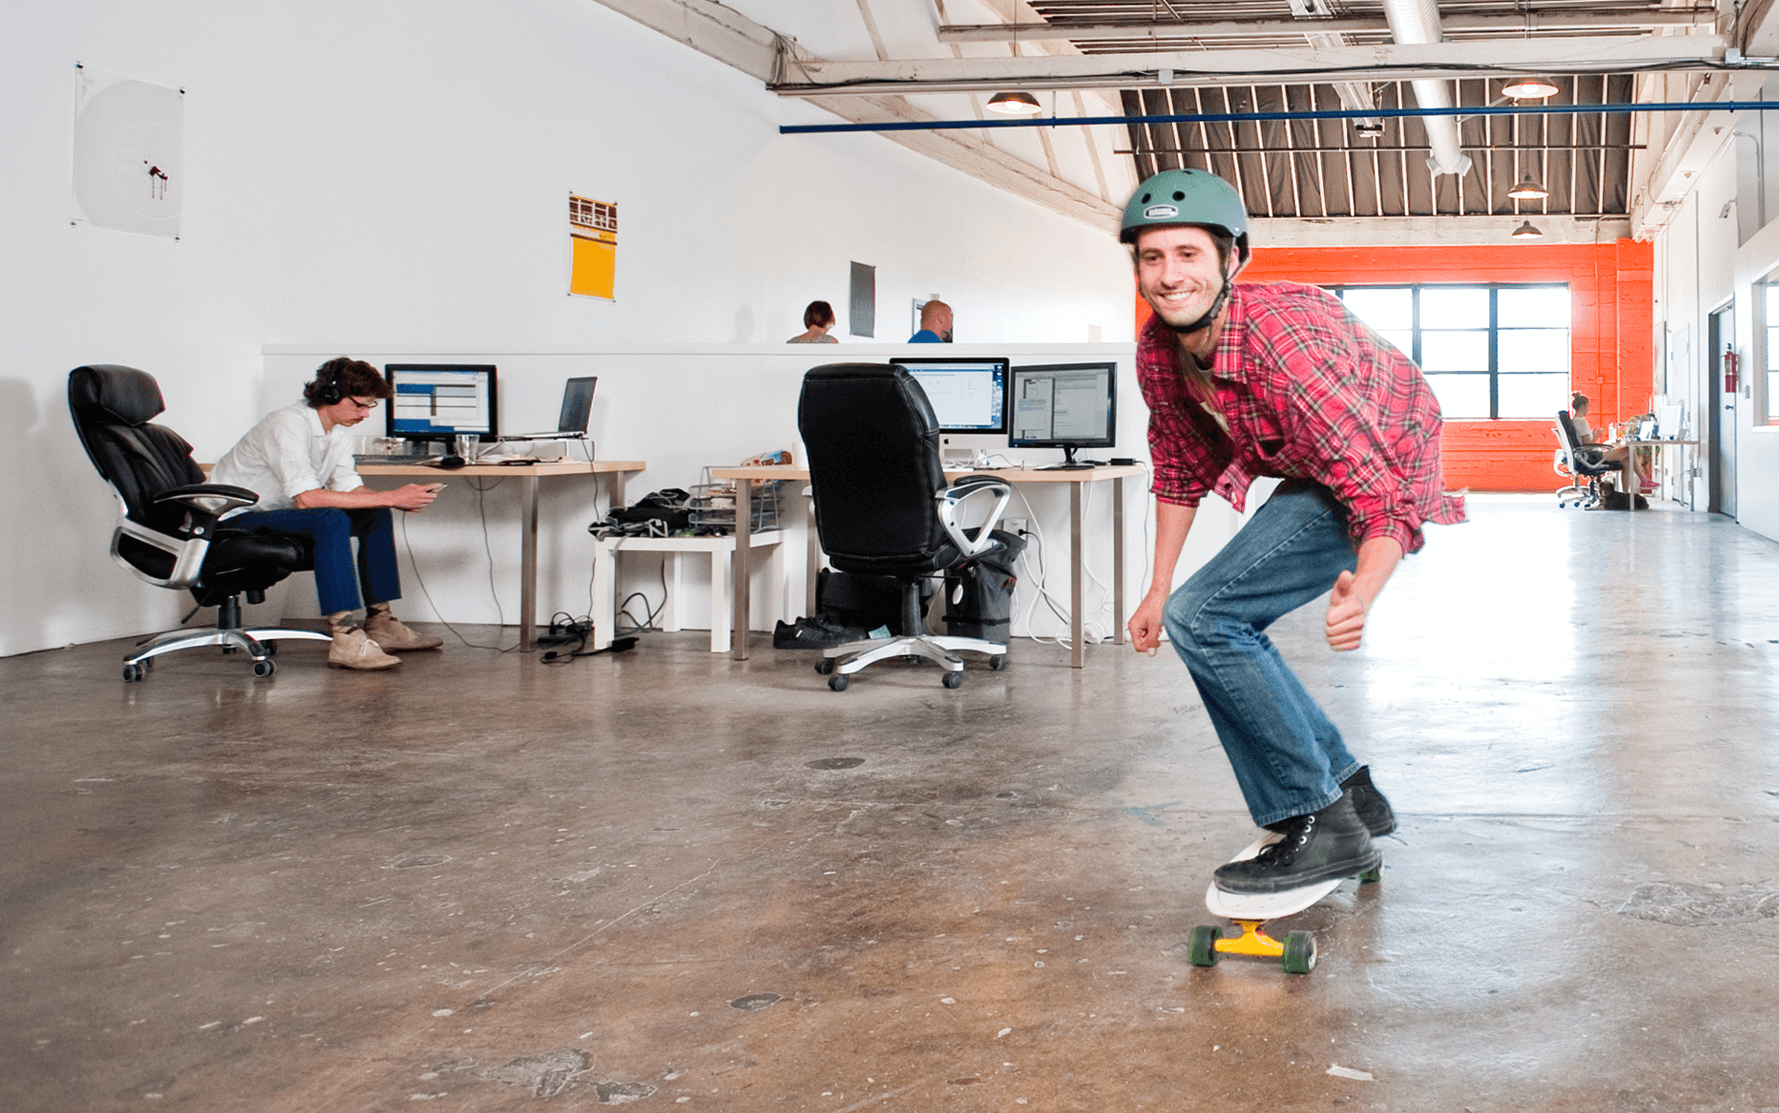 Employee riding a skateboard in the office